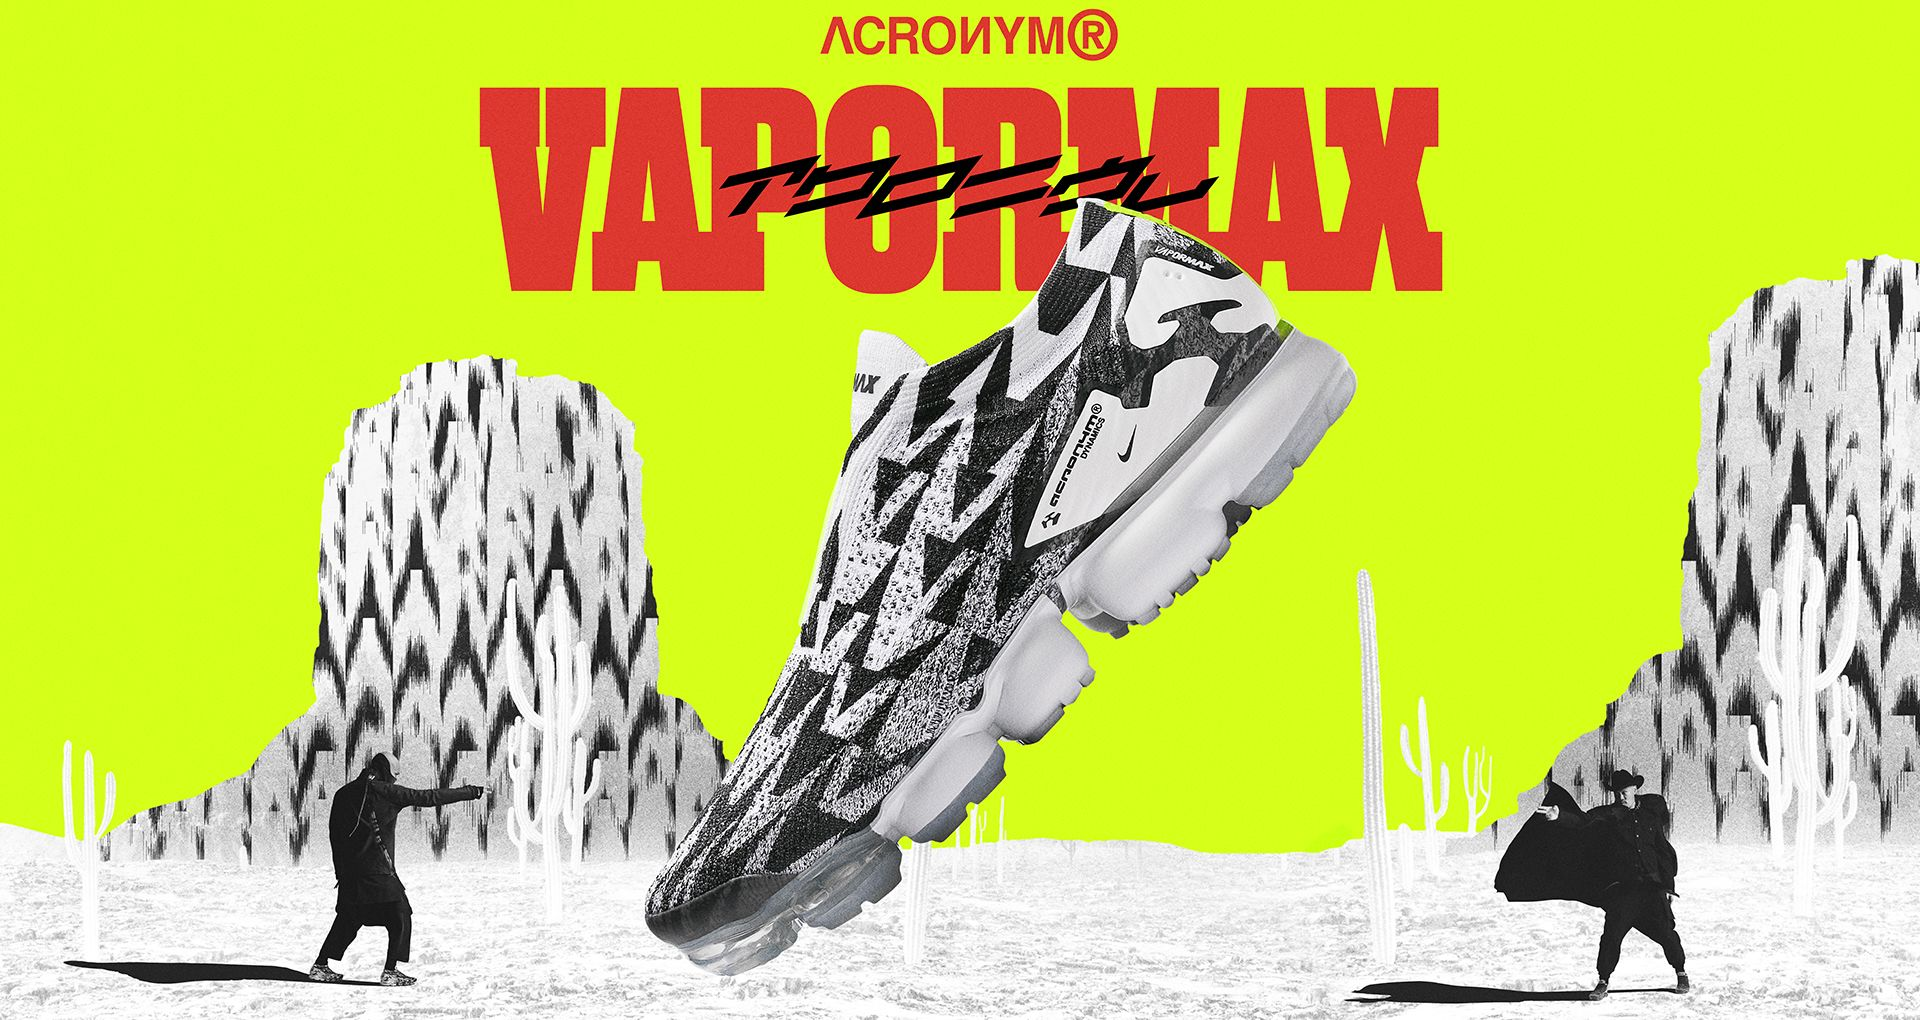 1812929a1d Date de sortie de la Nike Air Vapormax Moc 2 Acronym « Light Bone &  Black & Volt ». Nike⁠+ Launch FR